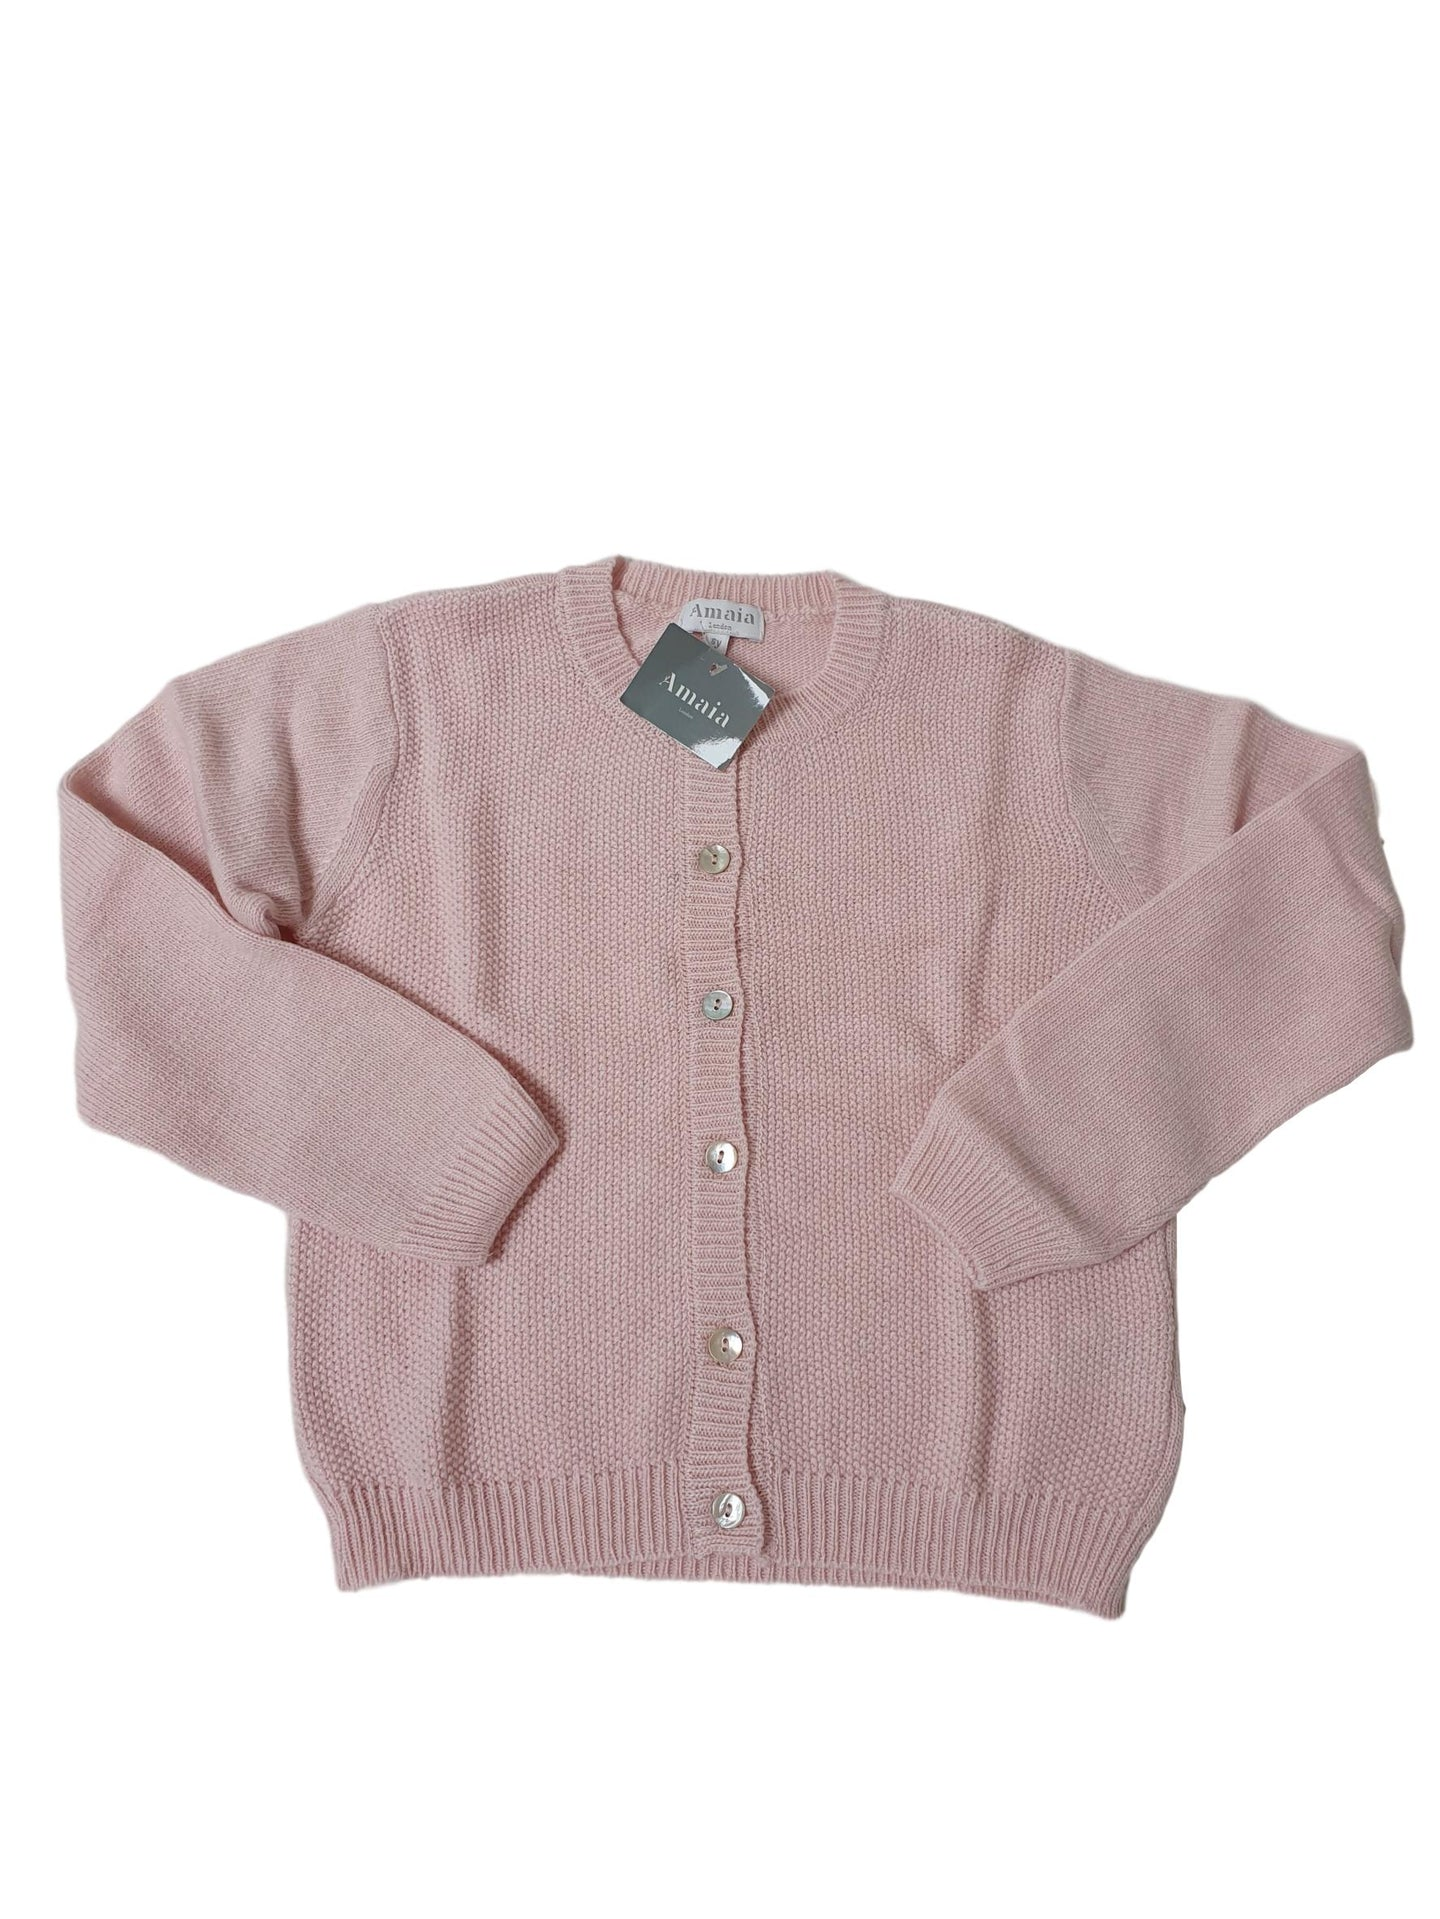 AMAIA OUTLET girl cardigan 8yo